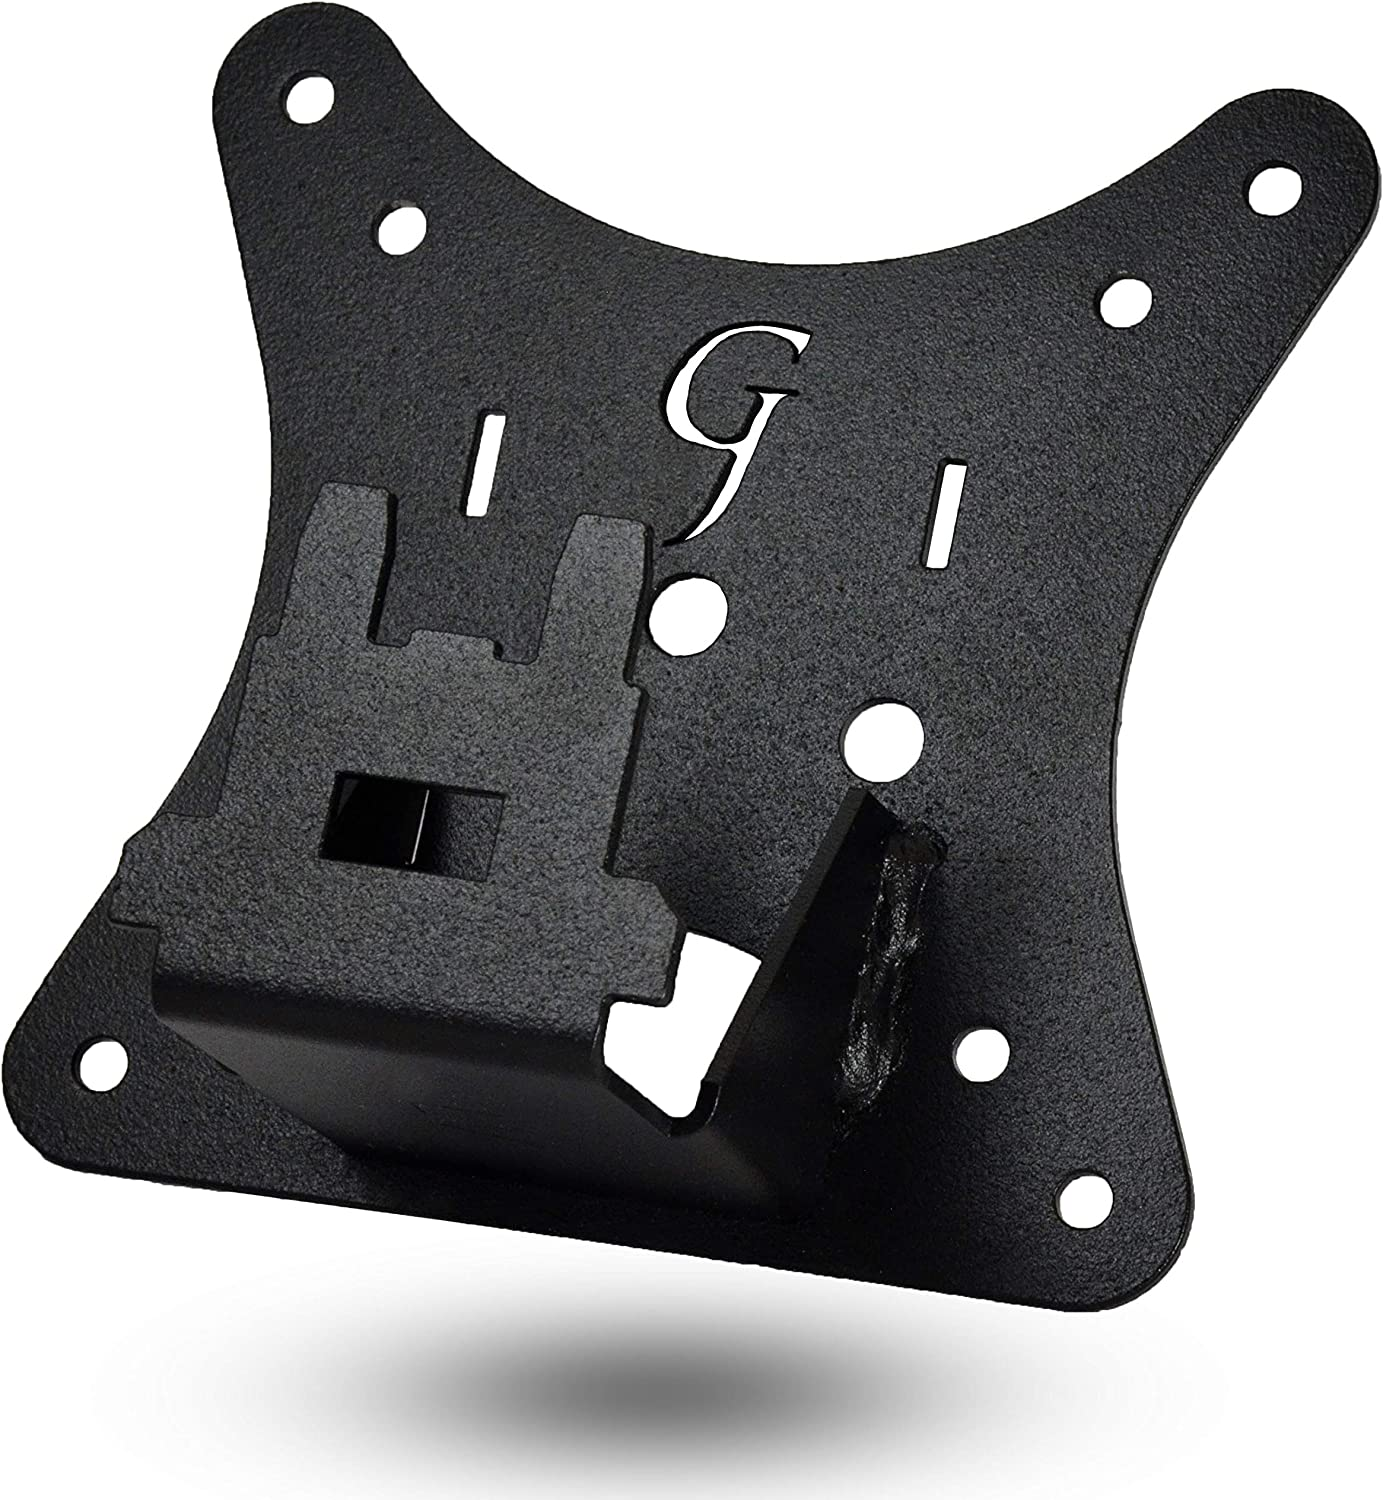 Gladiator Joe Monitor Arm/Mount VESA Bracket Adapter Compatible with Acer G227HQL, G237HL, G247HYL, H226HQL, H236HL, SA230 bi, SB220q (See Full Model List Below) - 100% Made in North America